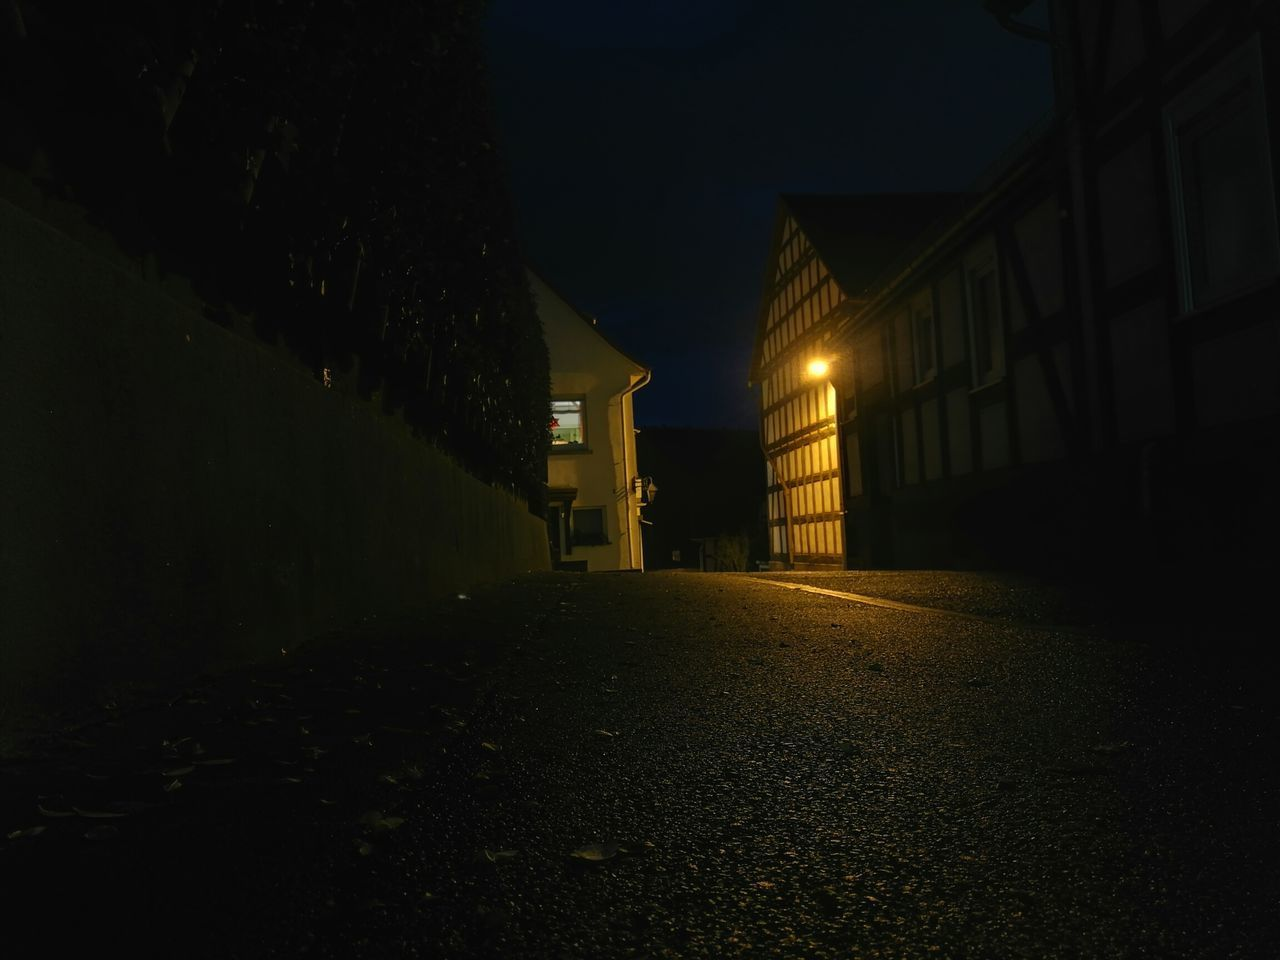 night, illuminated, building exterior, the way forward, architecture, built structure, no people, outdoors, sky